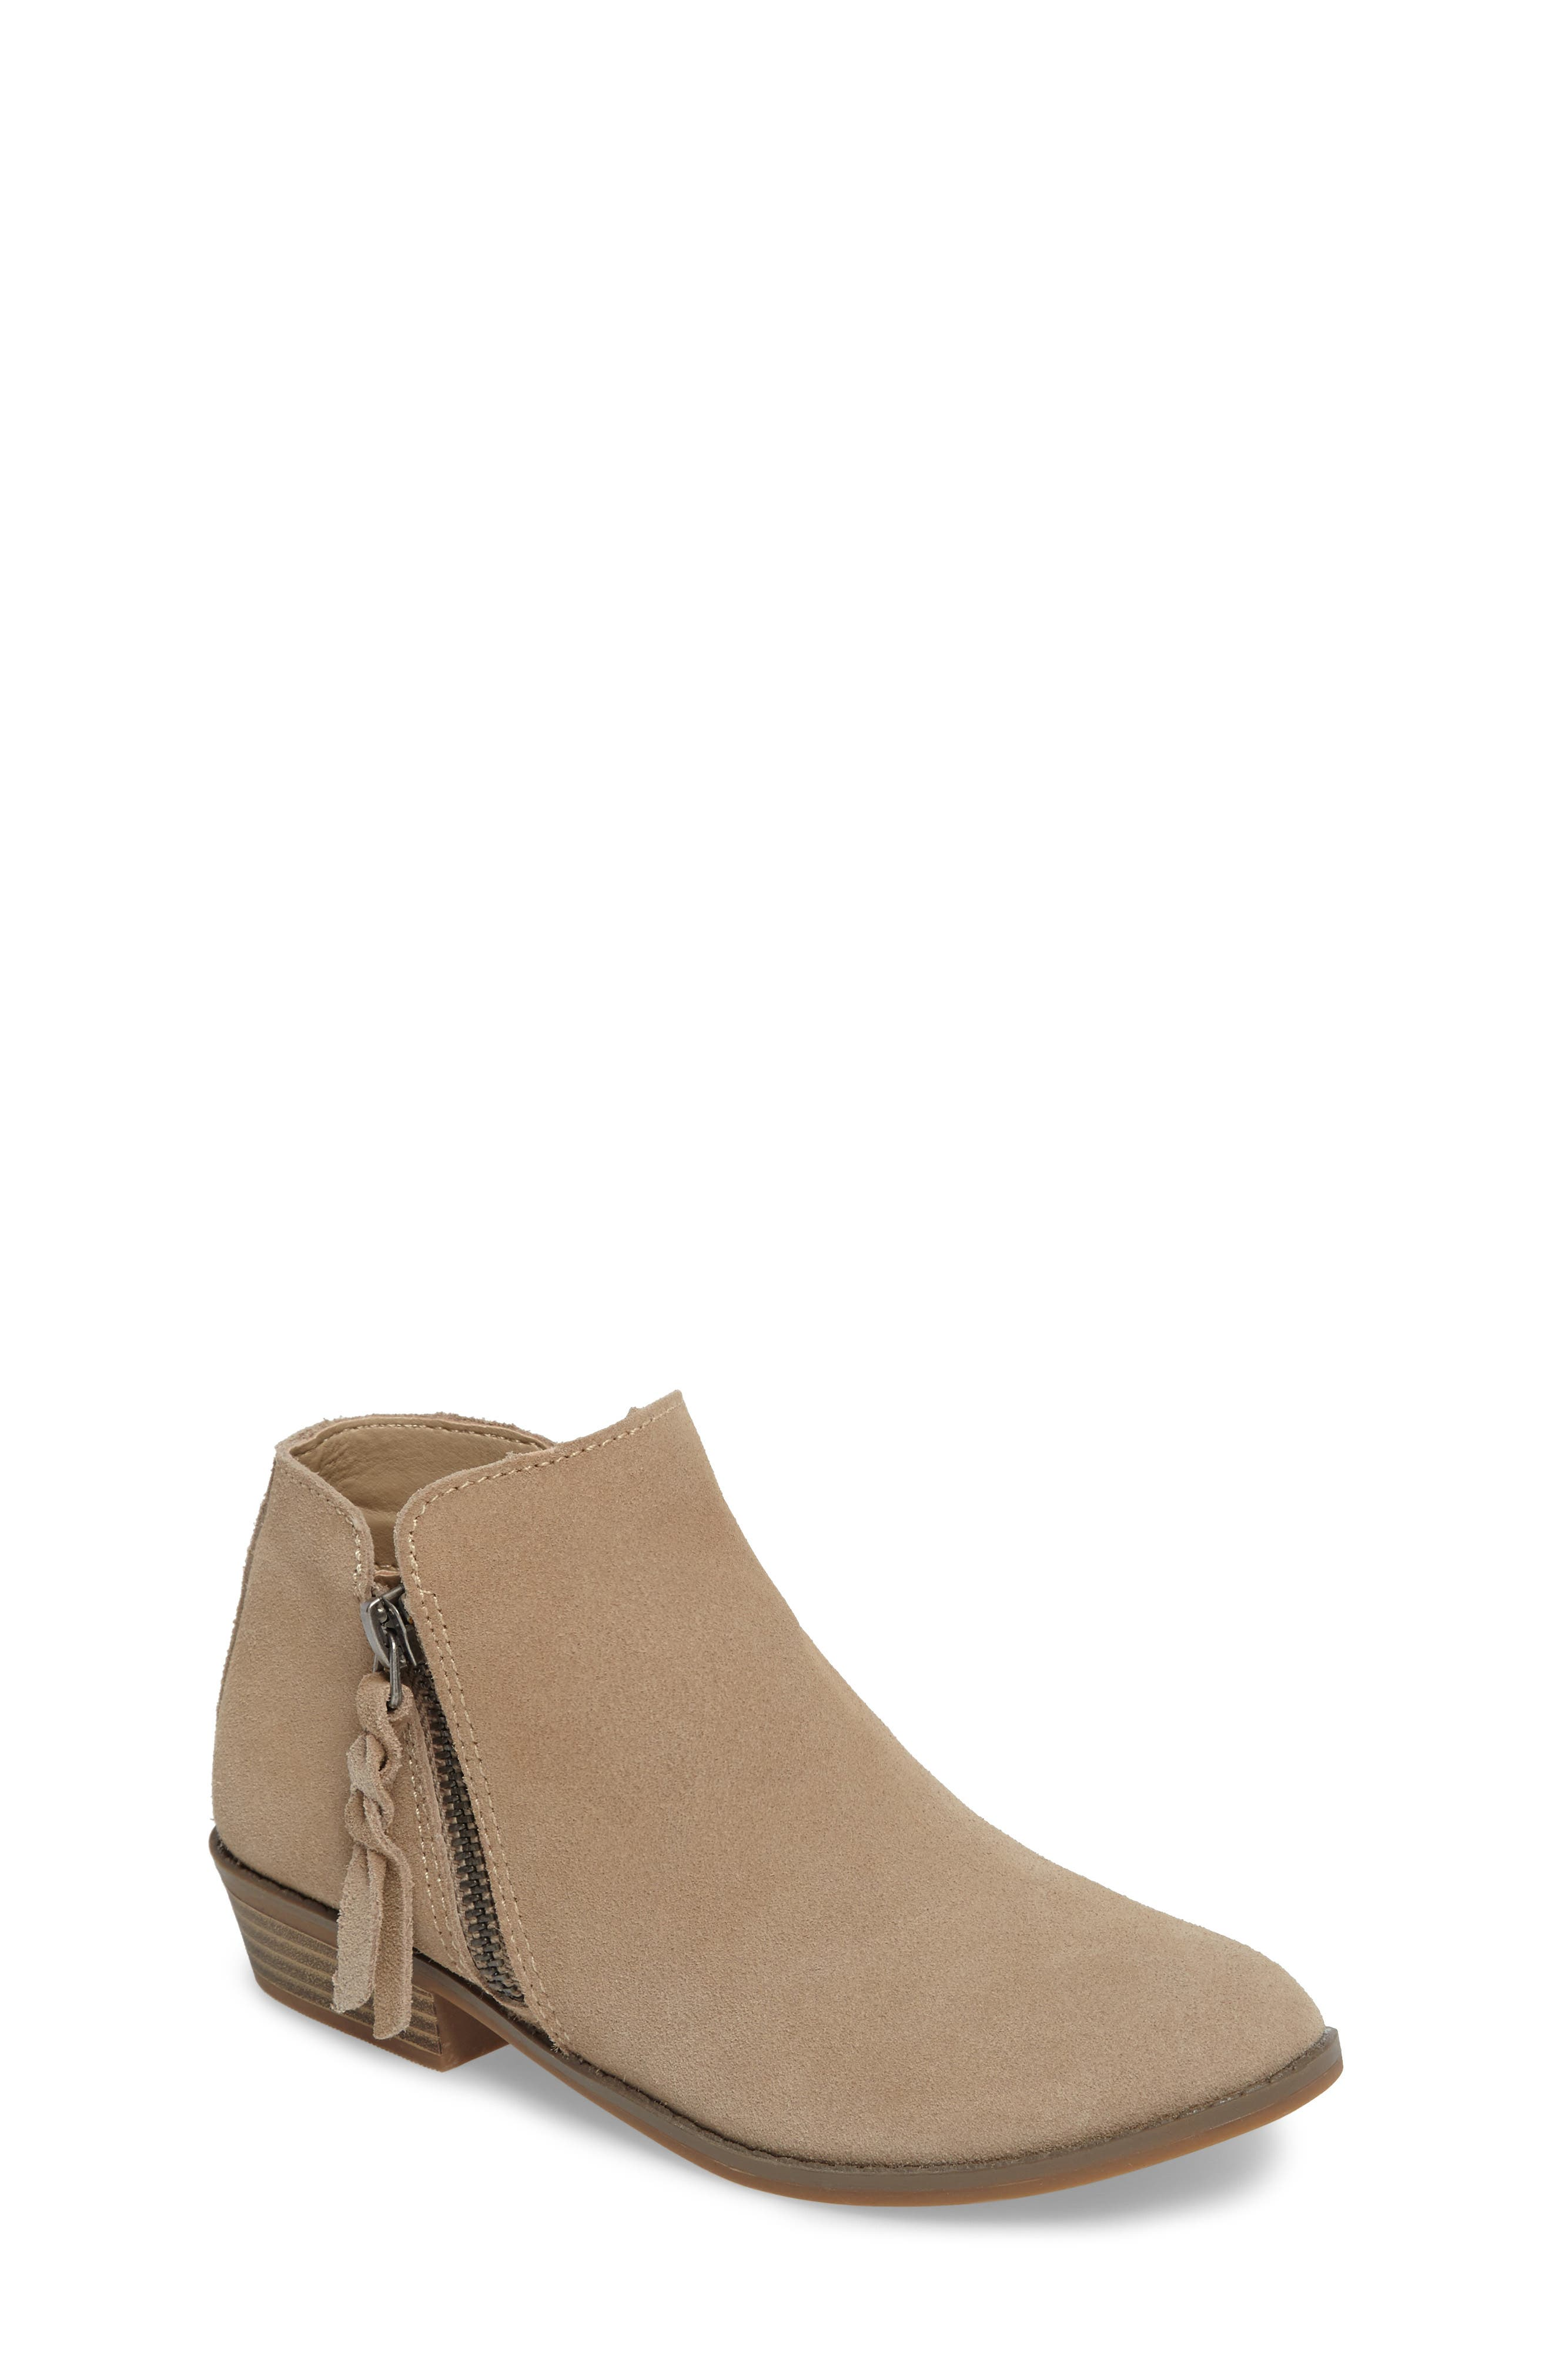 Sia Double-Zip Bootie,                         Main,                         color, Sand Suede